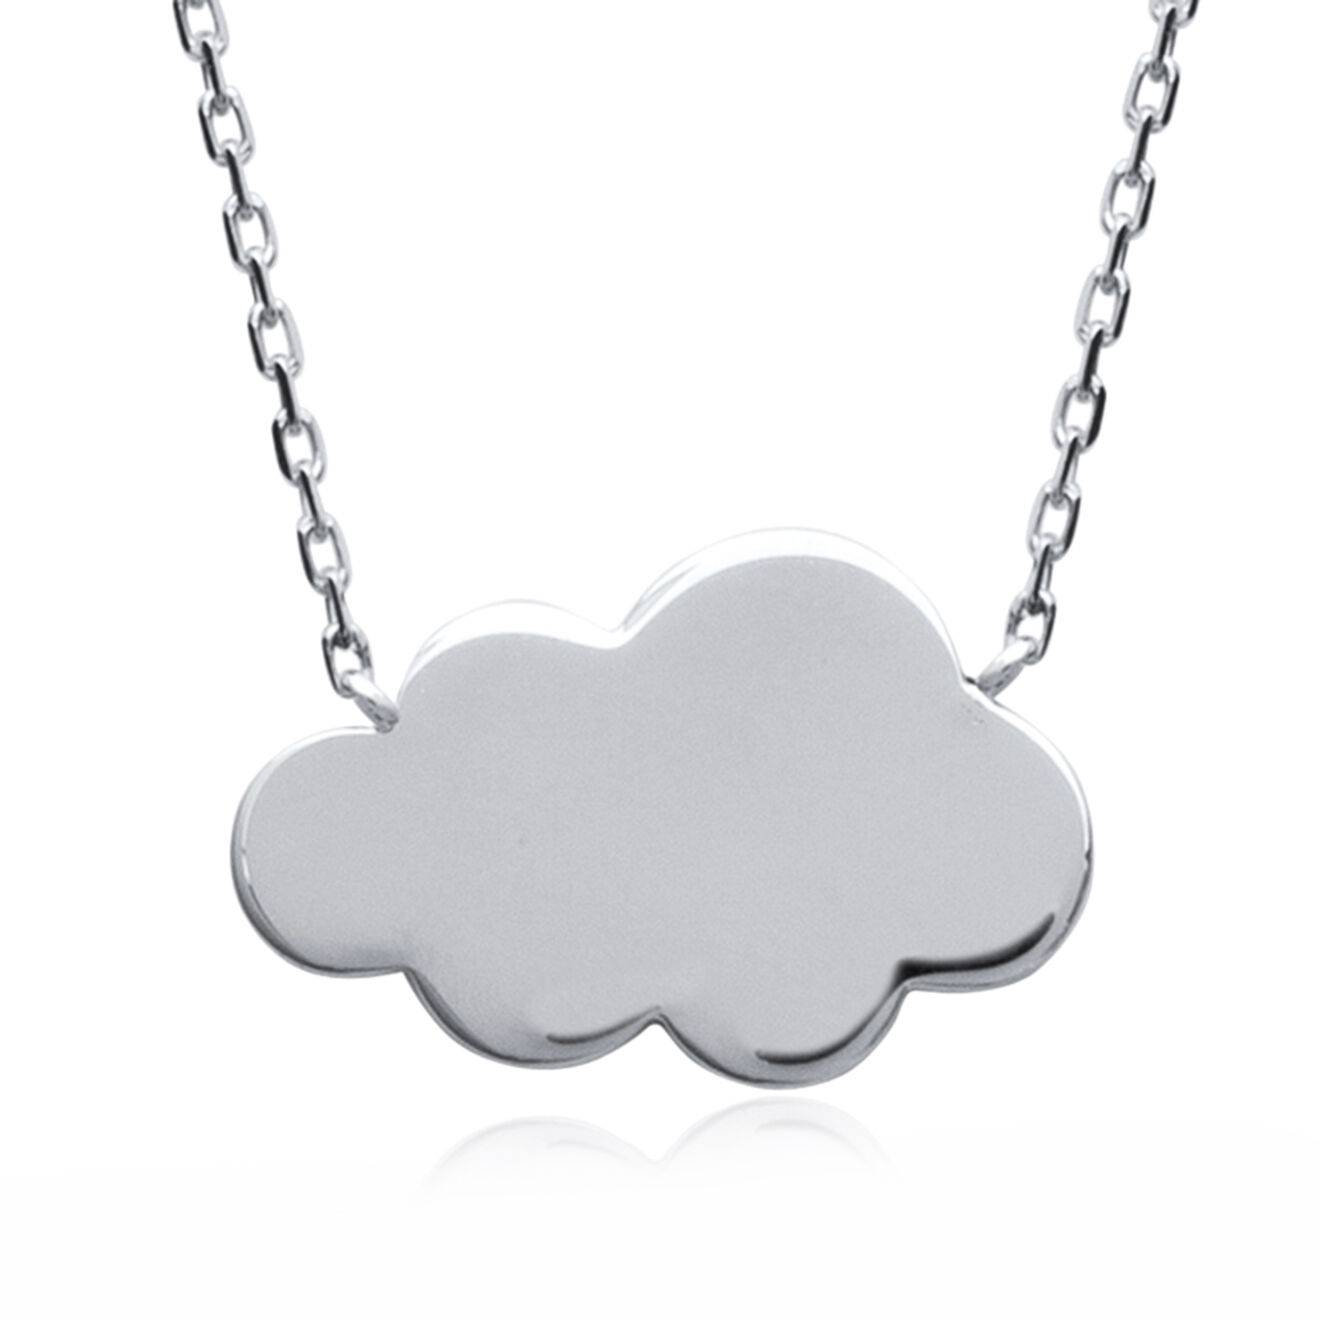 Sensimio Collier In the Sky argent